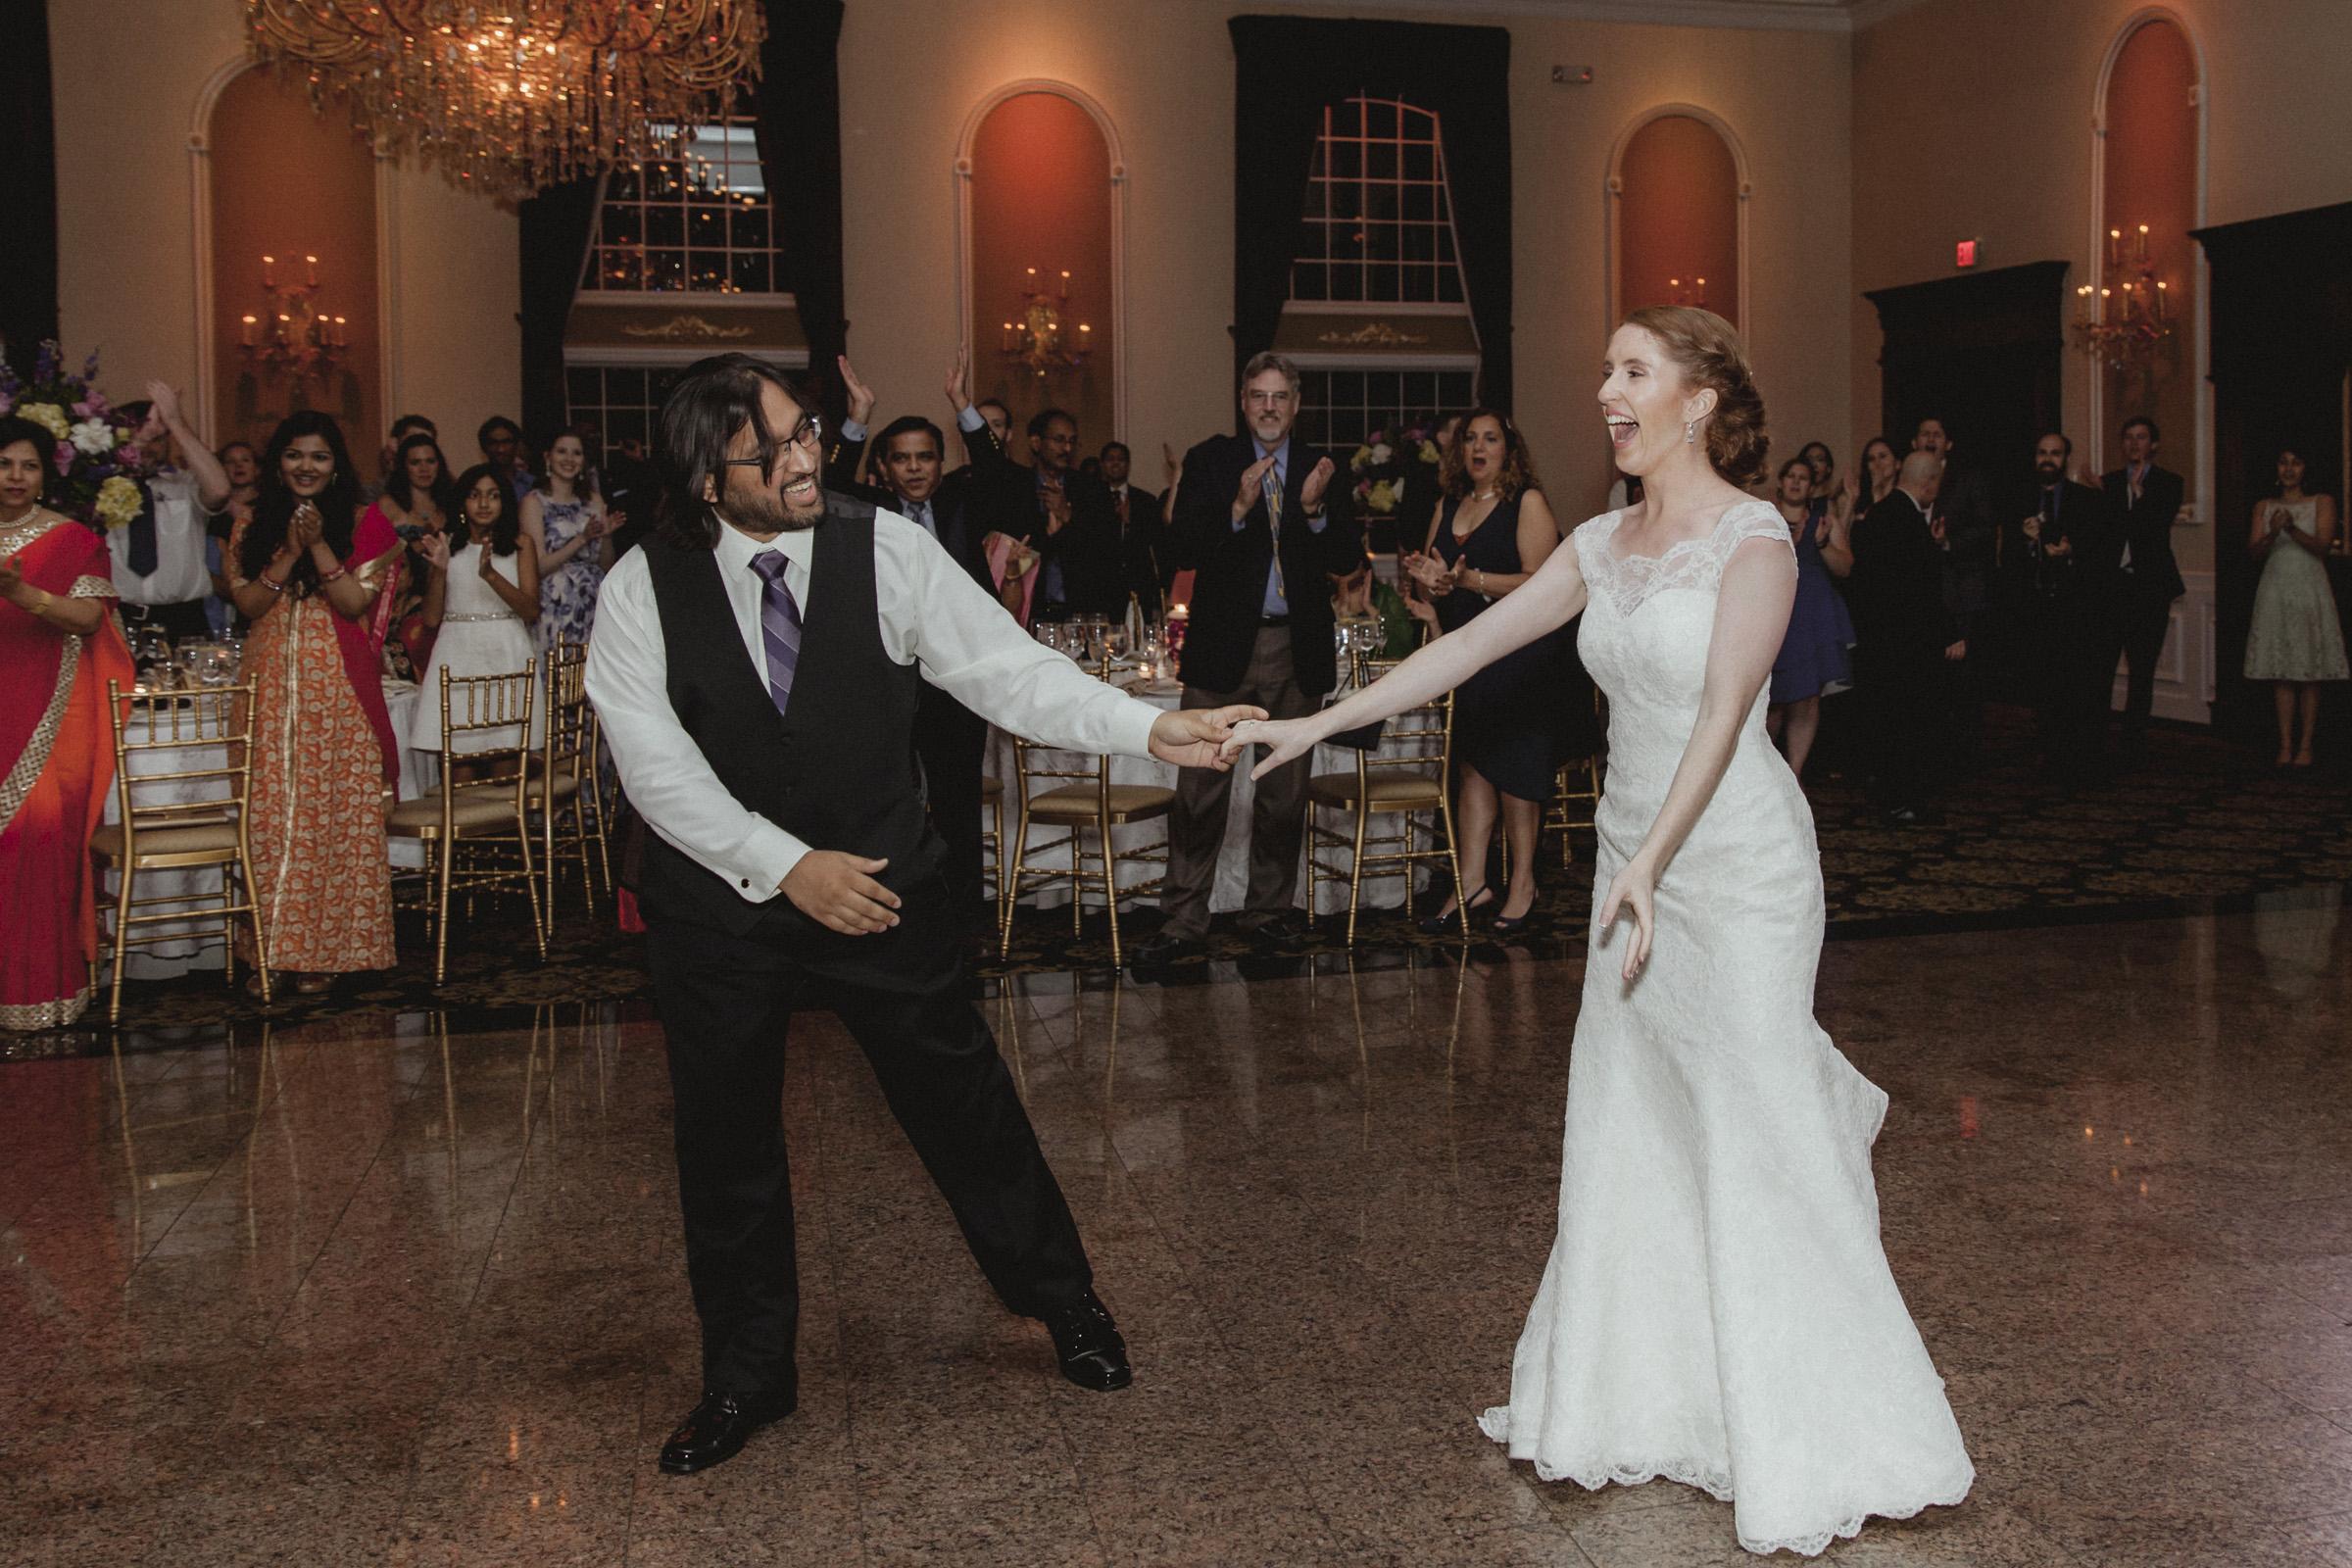 Bride and groom bow after their first dance - Estate at Florentine Gardens wedding - Hudson Valley Wedding - Kelsey & Anish's wedding - Amy Sims Photography